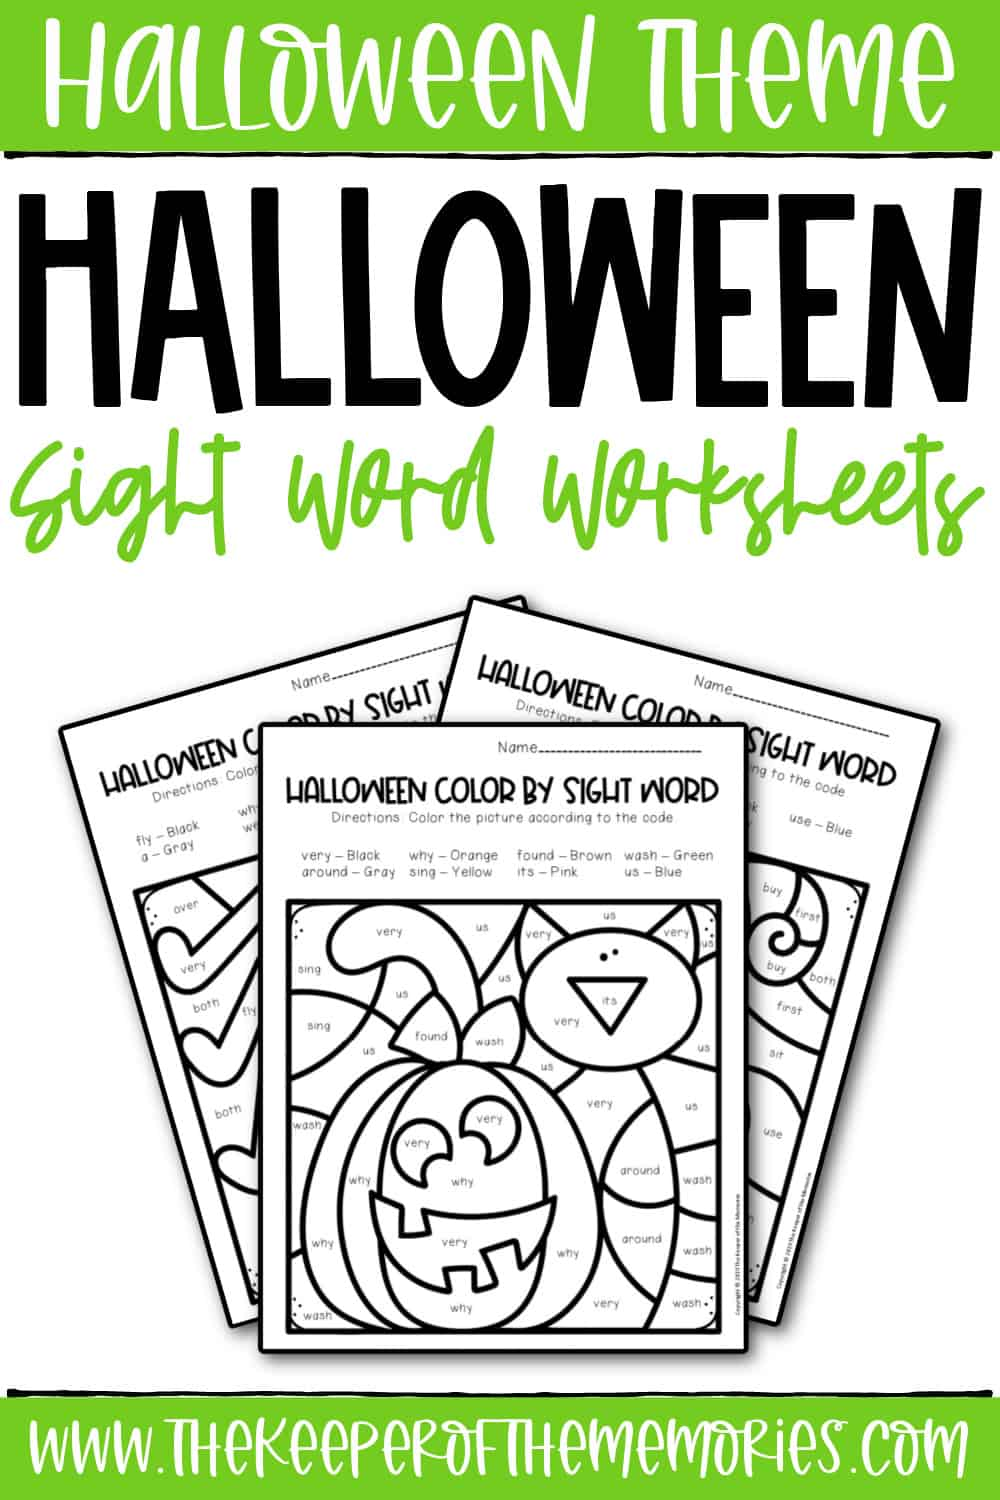 Color by Sight Word Halloween Worksheets for Second Graders